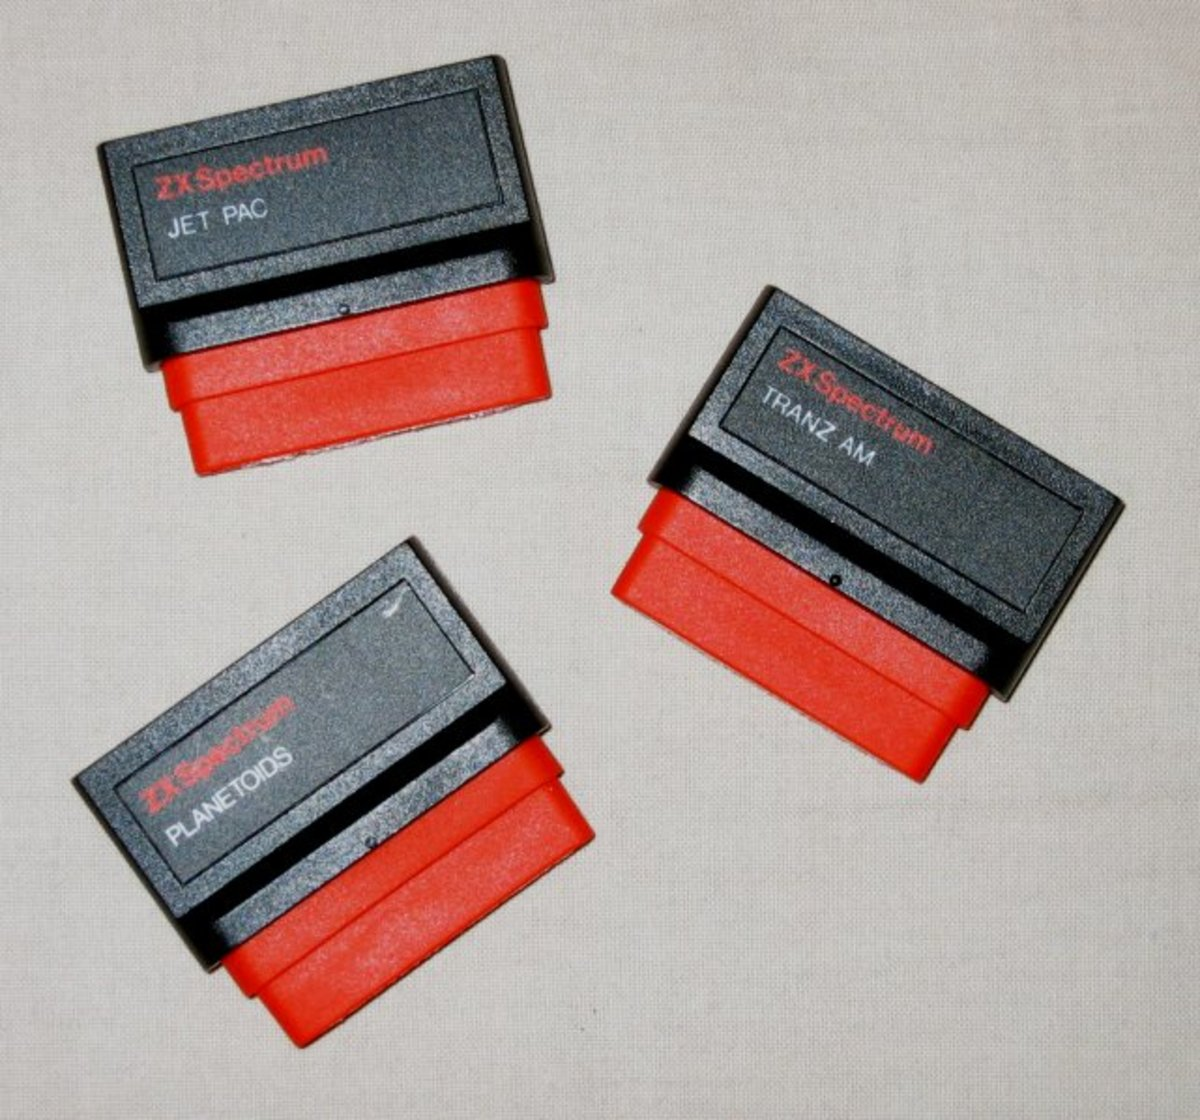 Jetpac, Tranz Am and Planetoids on ROM carts